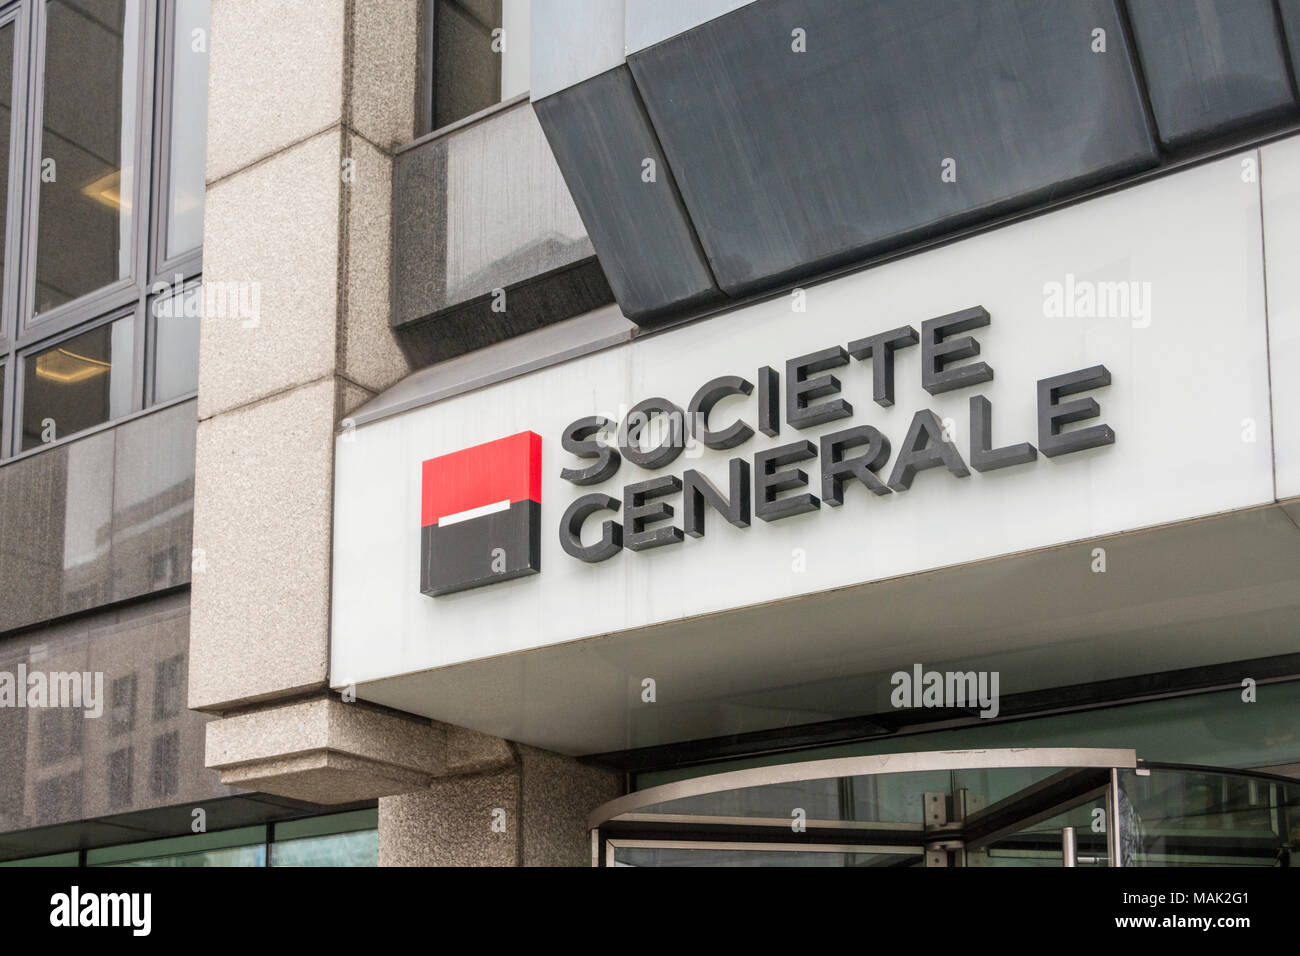 Société Générale S.A. is a French multinational banking and financial services company located in Exchange House, Primrose Street, London, EC2, UK - Stock Image